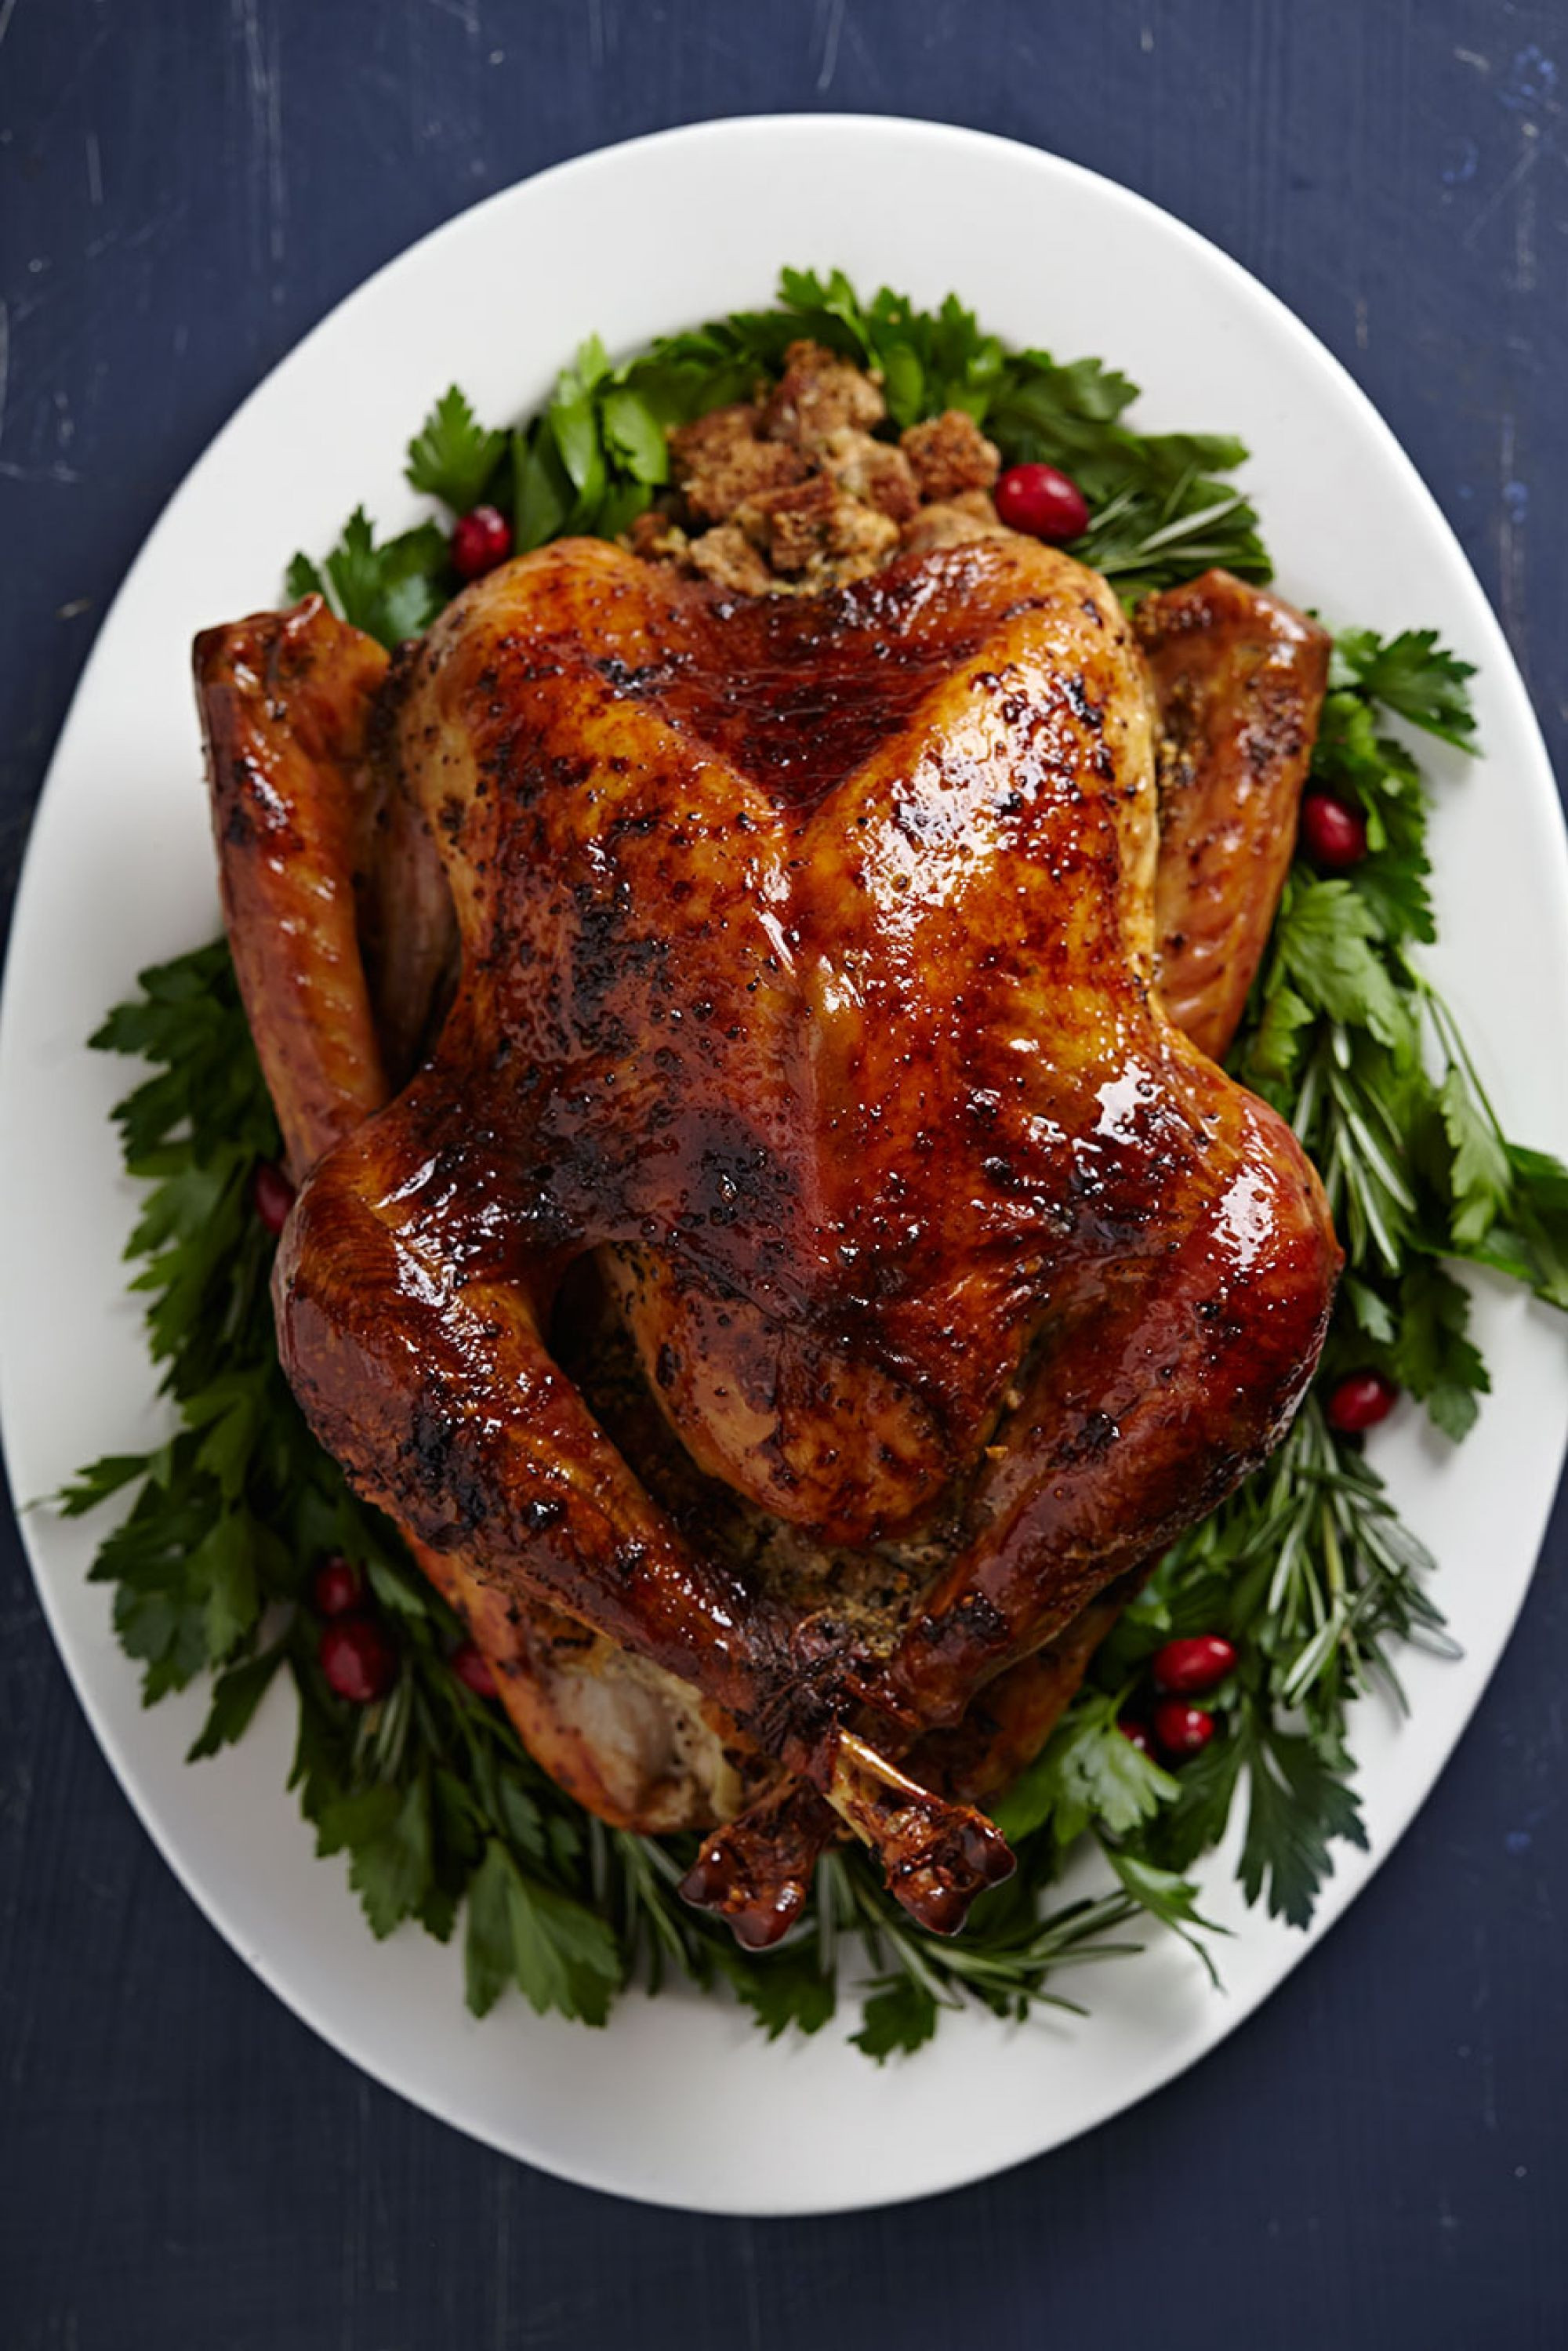 Baked Turkey Recipes For Thanksgiving  Planning a Thanksgiving Menu 25 Amazing Recipes